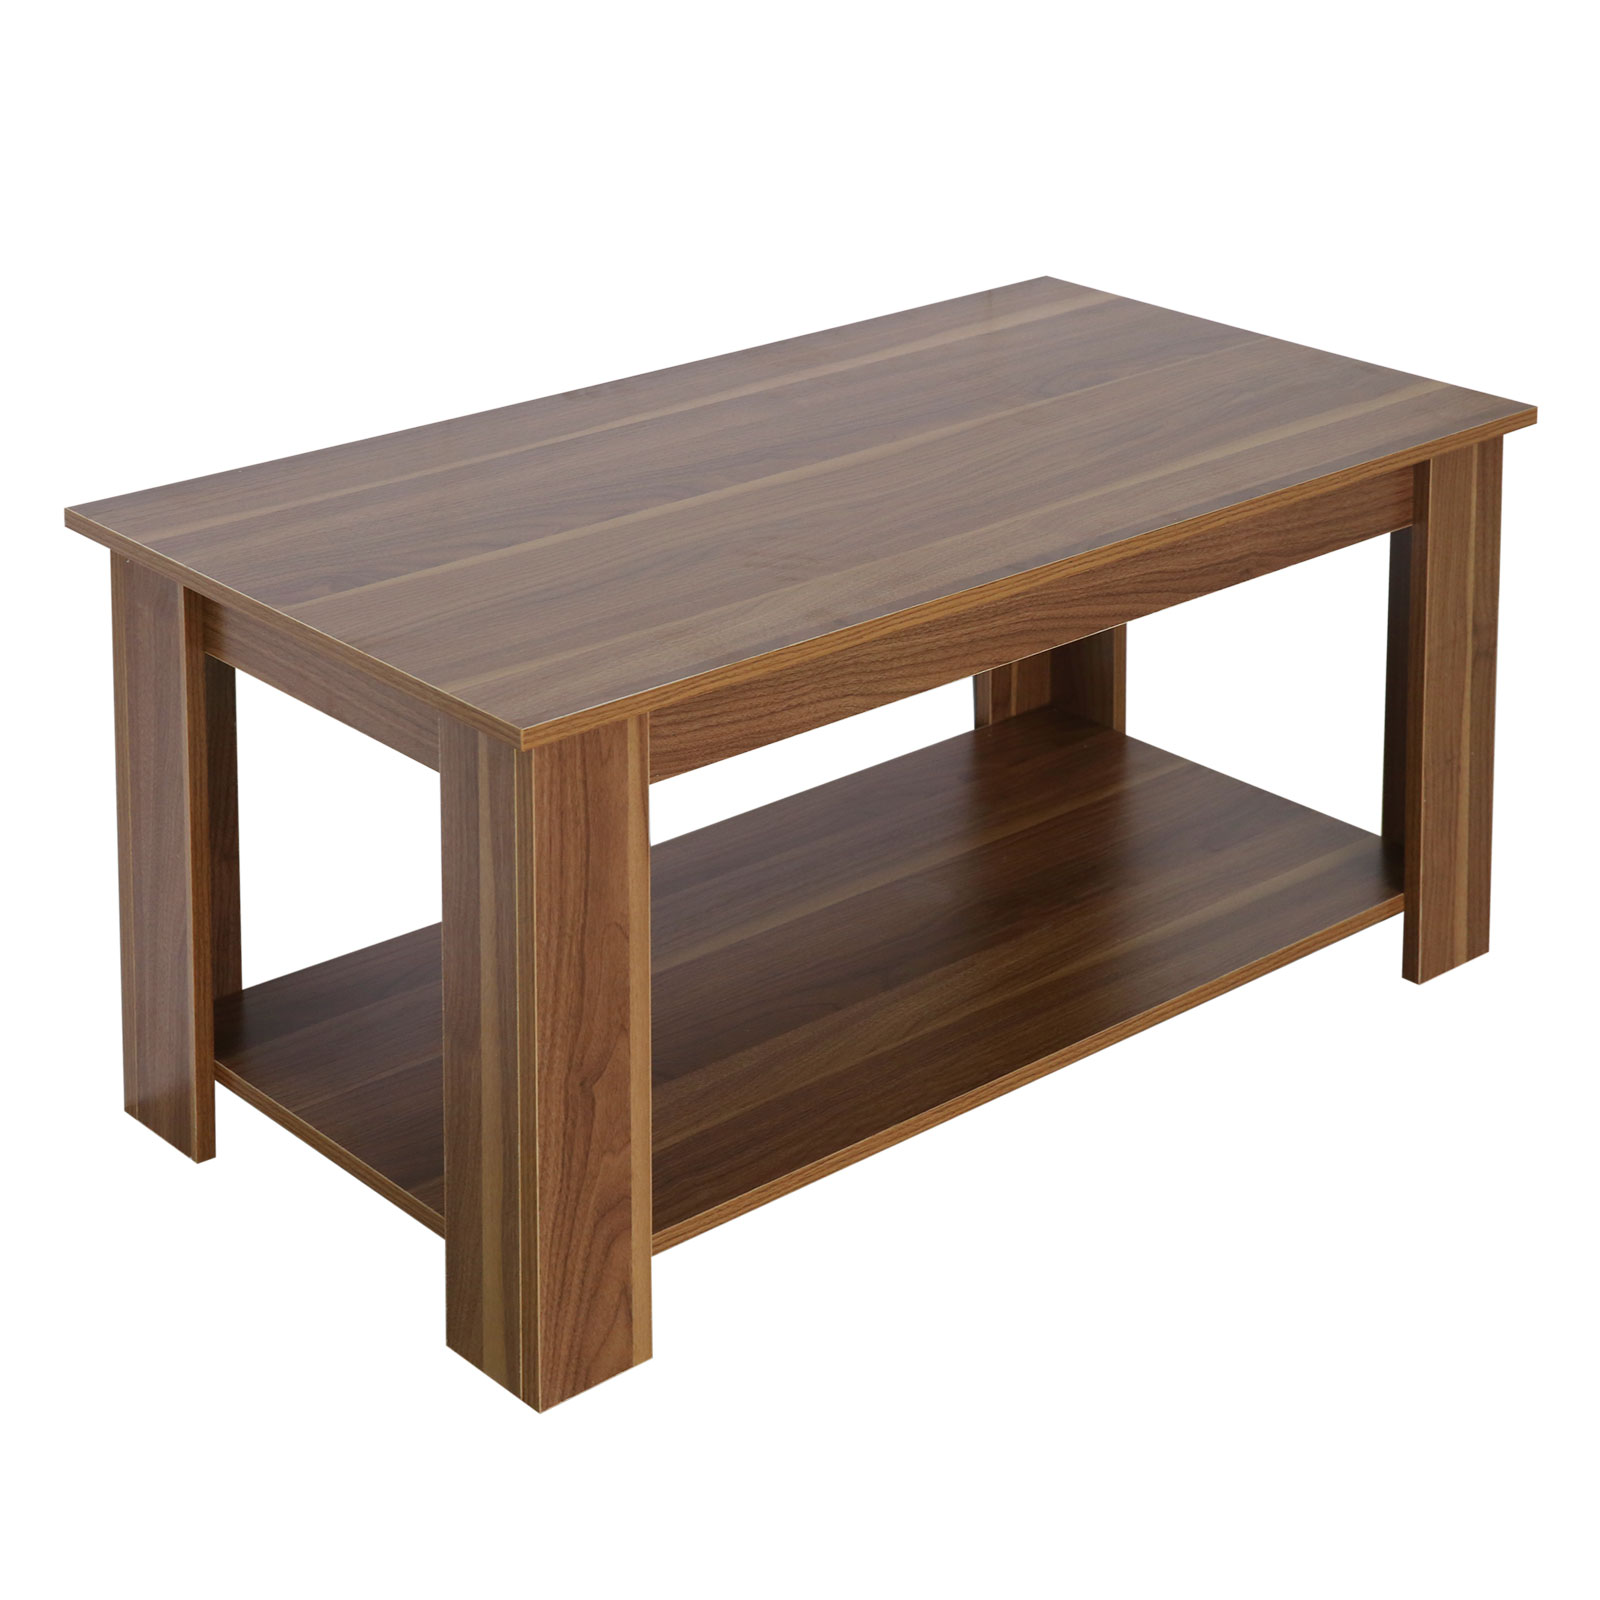 New Lift Up Top Coffee Table Living Room Oak Shelf Storage Wood Effect Furniture Ebay